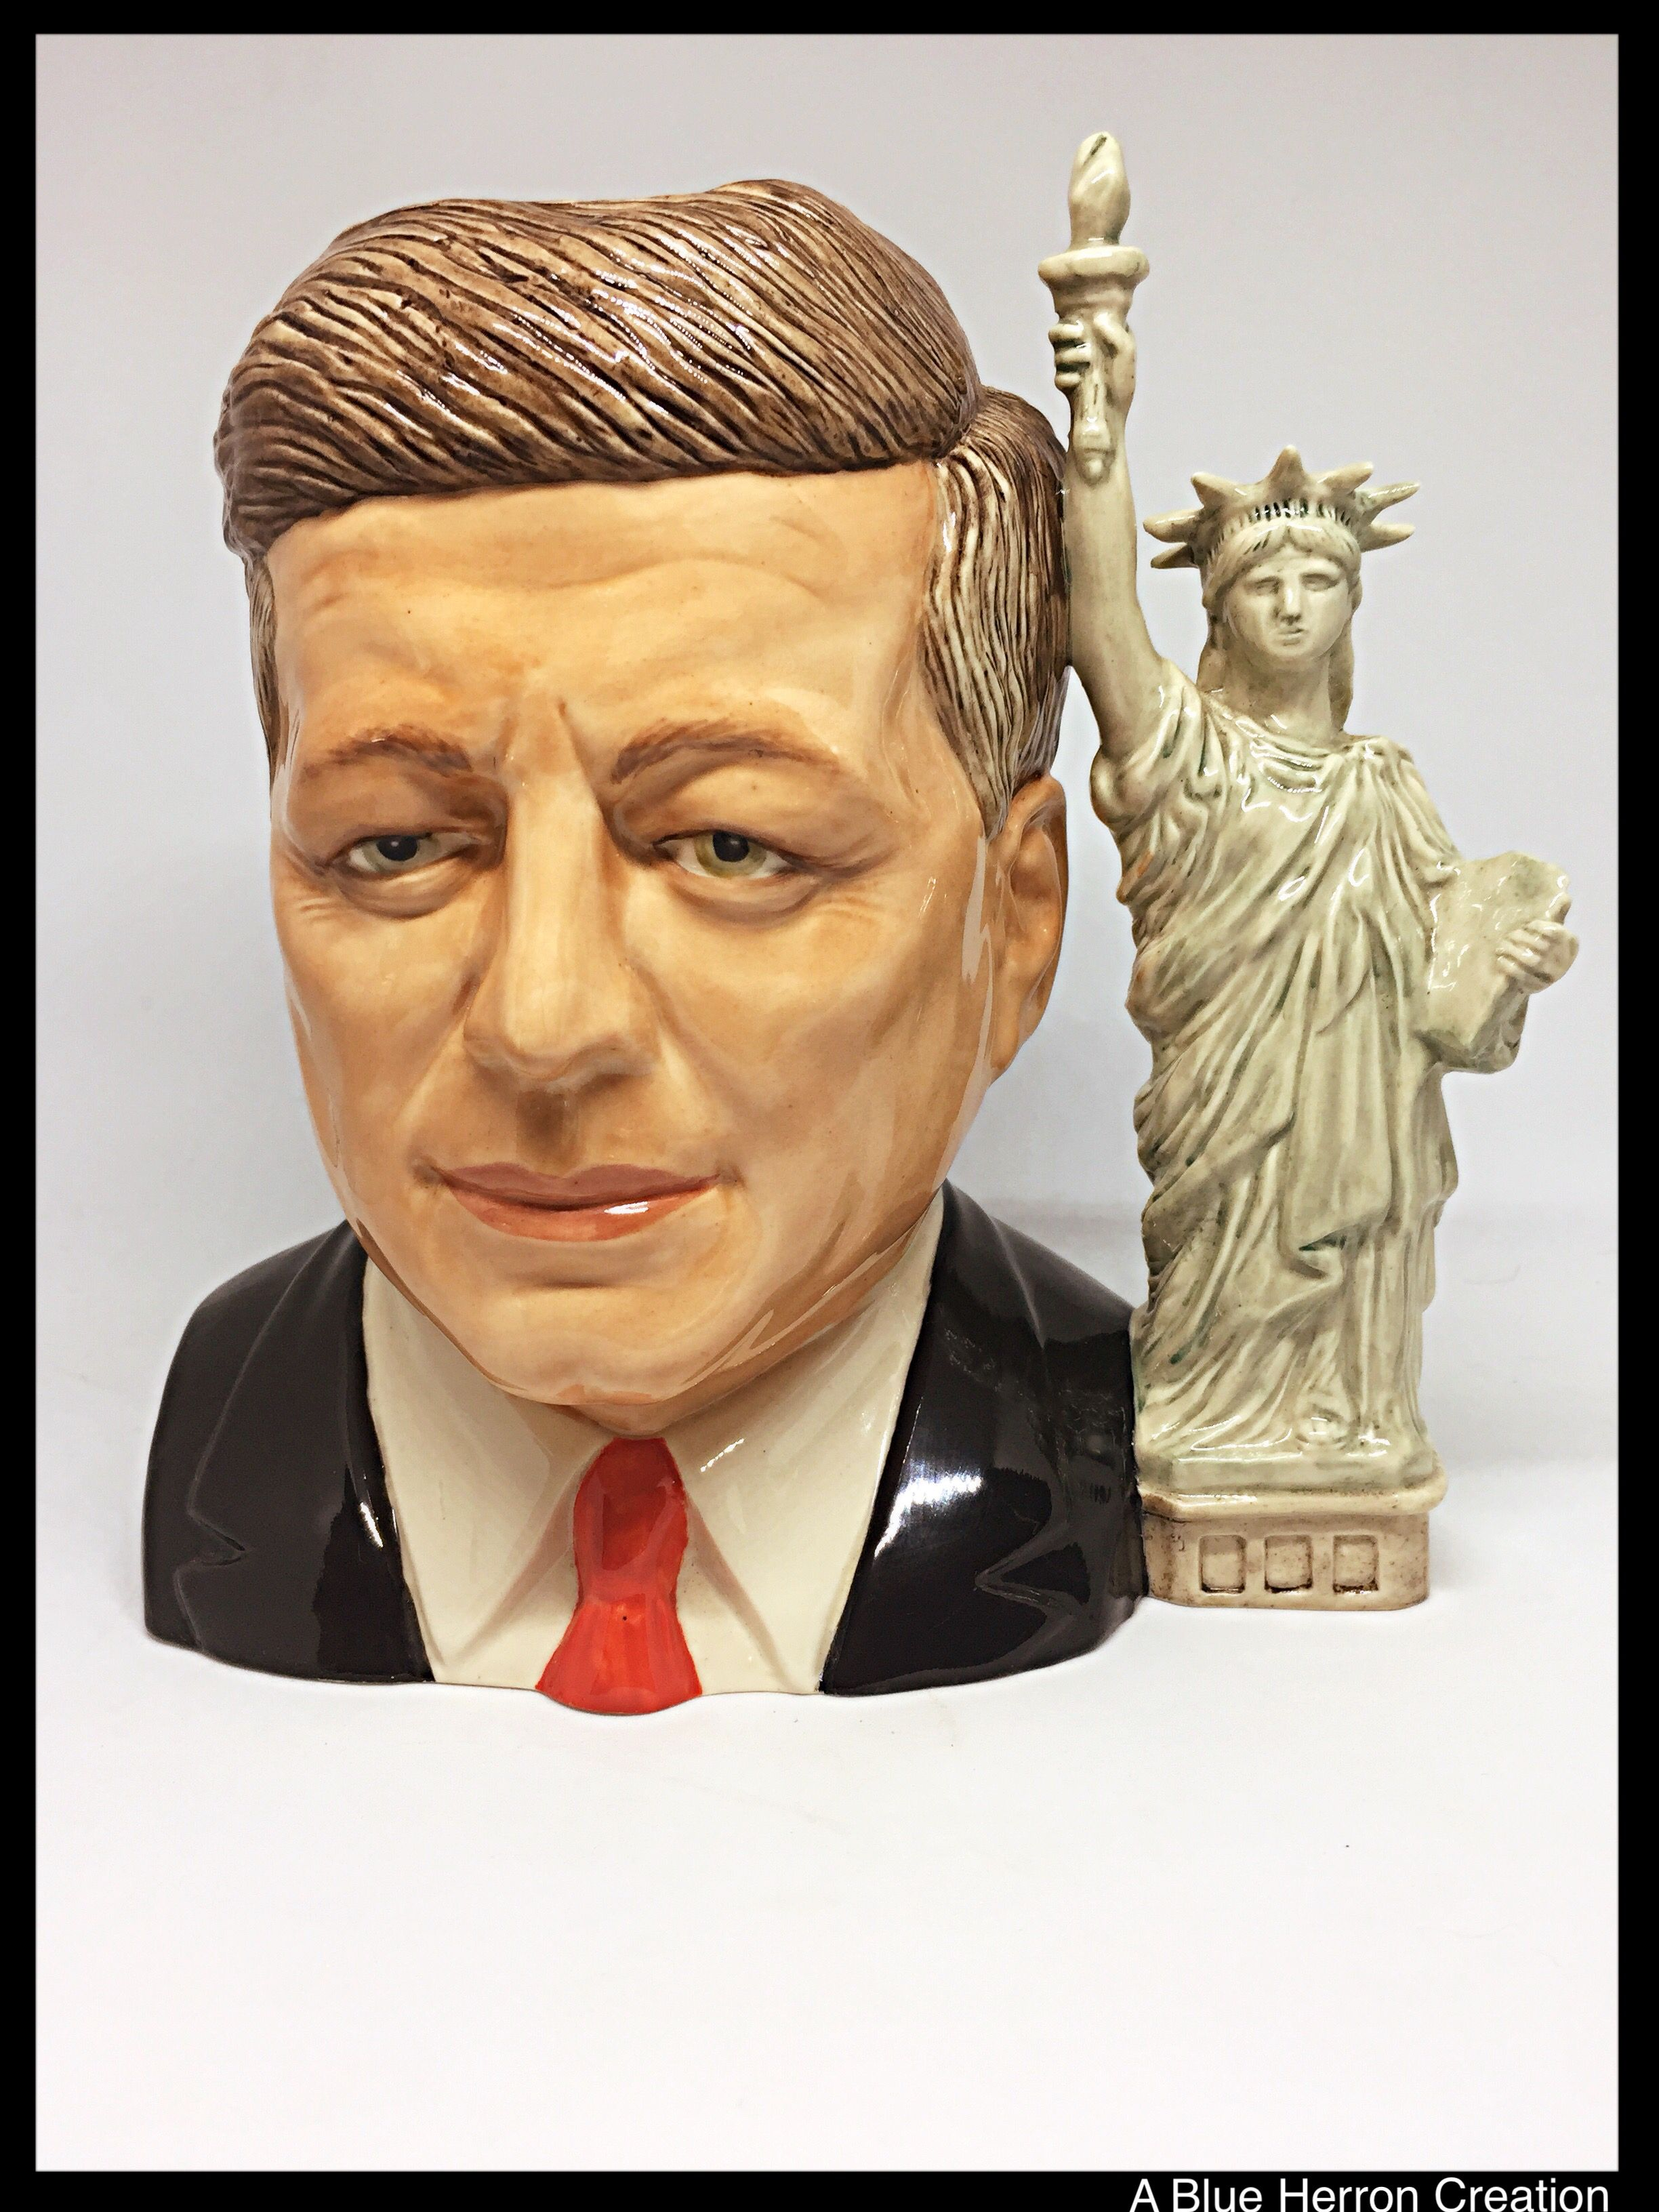 Rare John F Kennedy Limited Edition Porcelain Character Mug Toby Jug Ray Noble Ceramics Presidential Series Statue Of Liberty Jfk Mug Statue Statue Of Liberty Vintage Collection